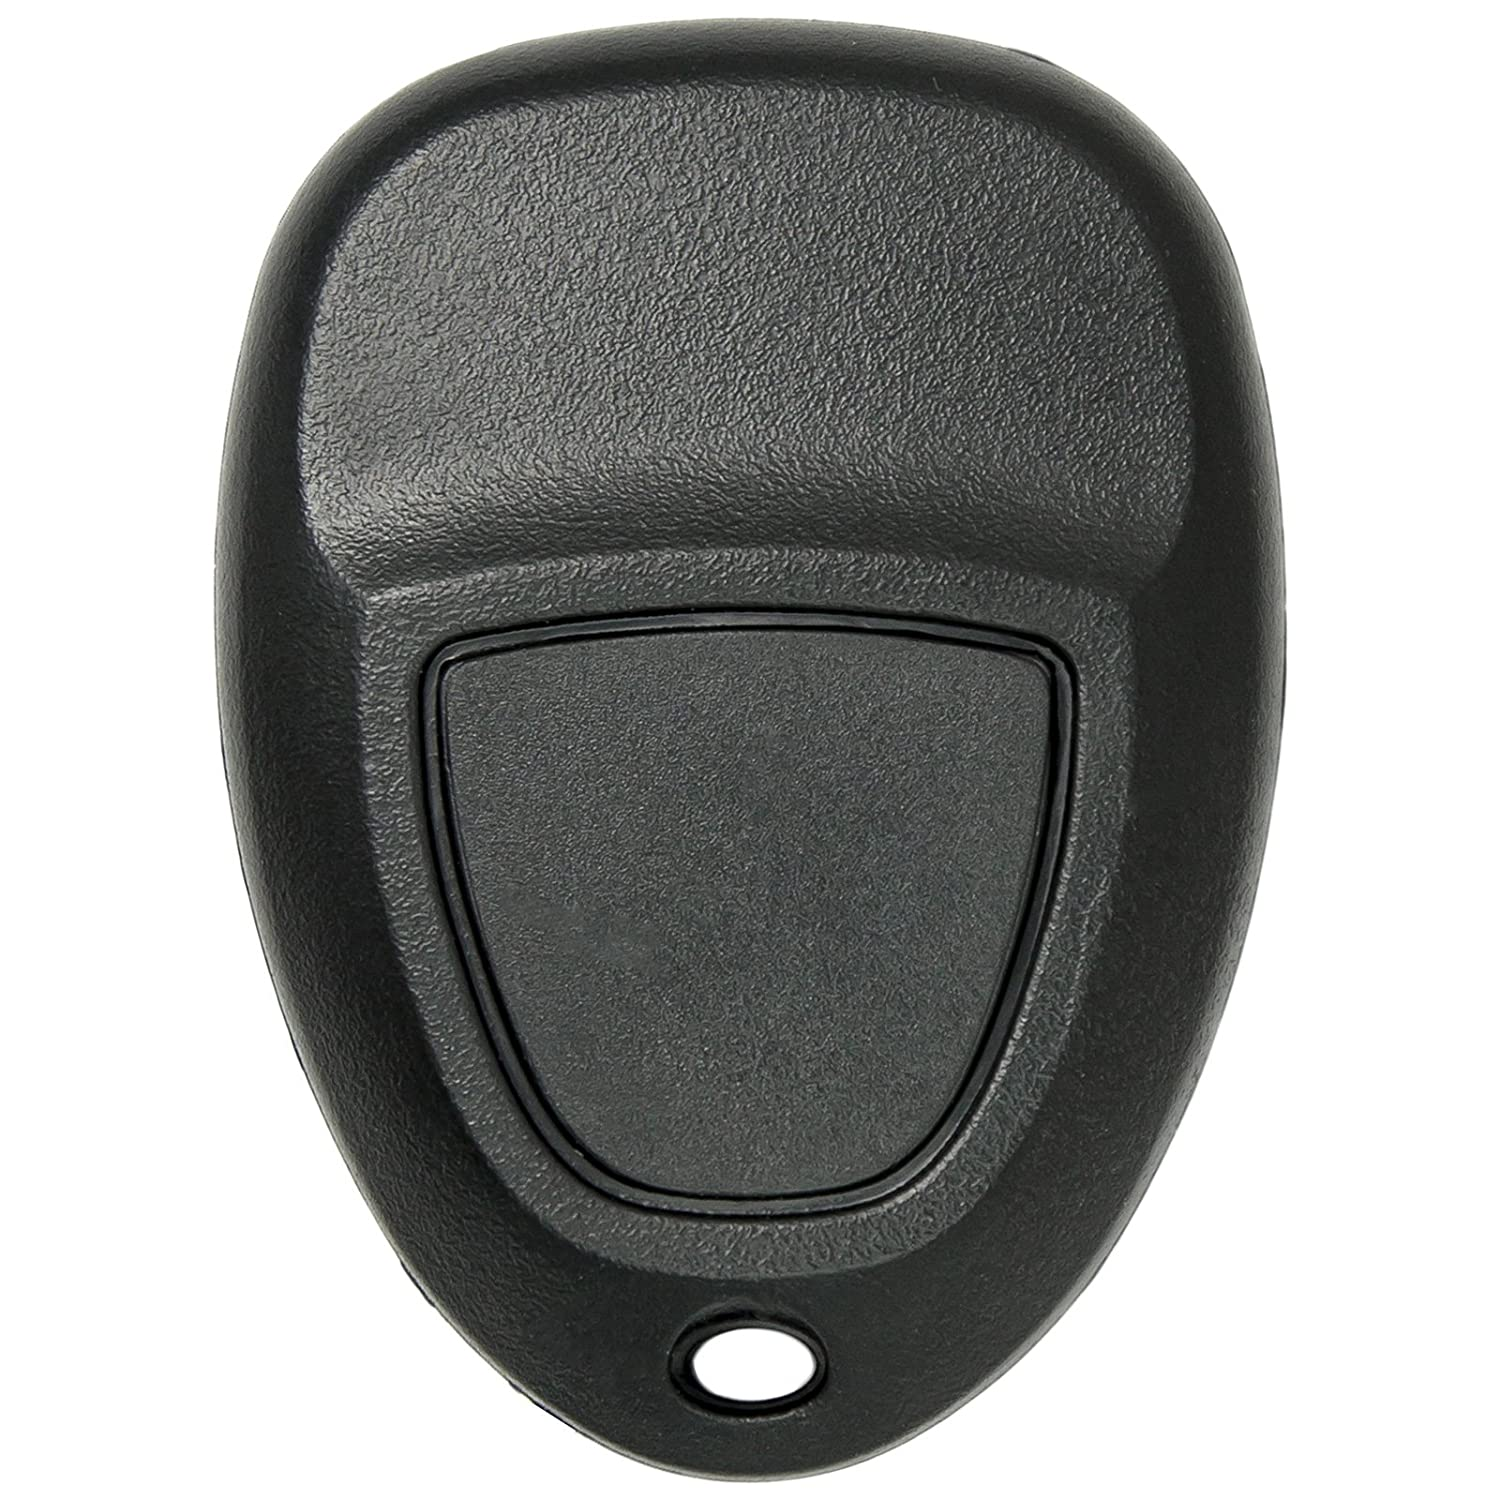 New Keyless Entry 5 Button Remote Start Car Key Fob for Select GM Chevrolet Buick Pontiac and Saturn